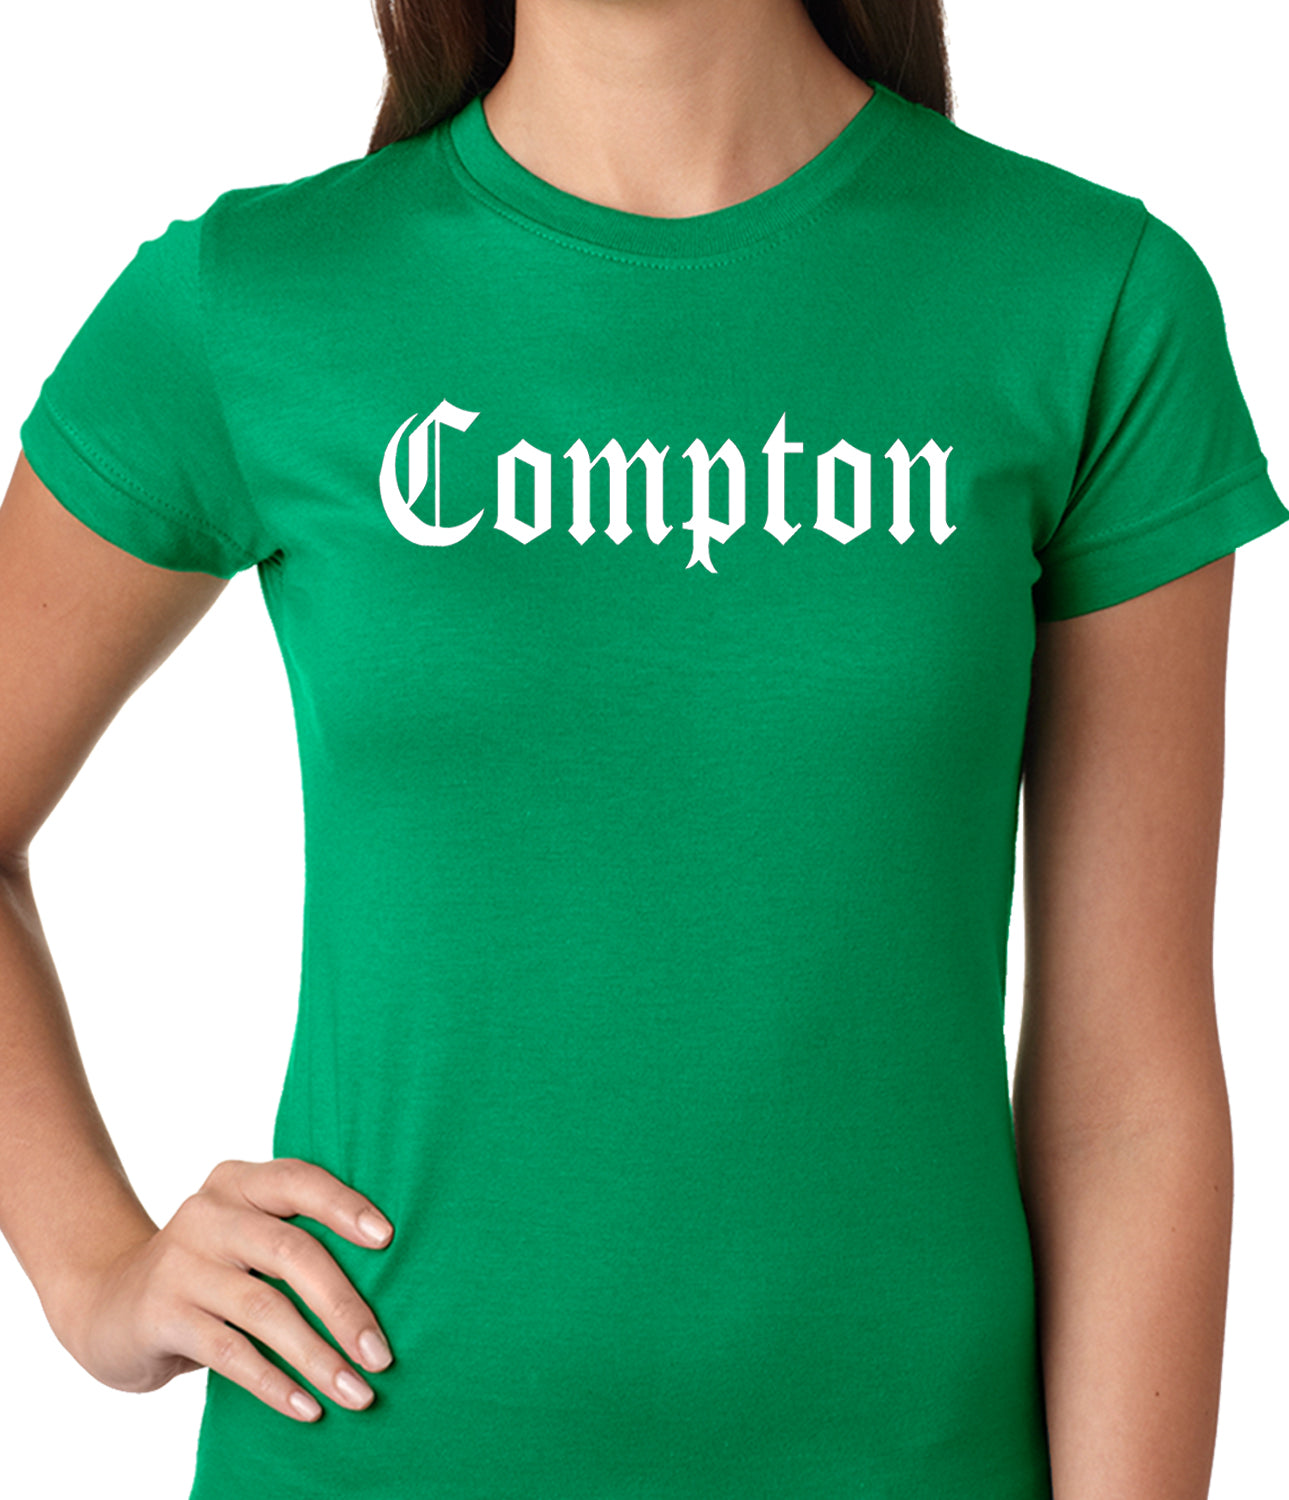 City Of Compton, California Ladies T-shirt